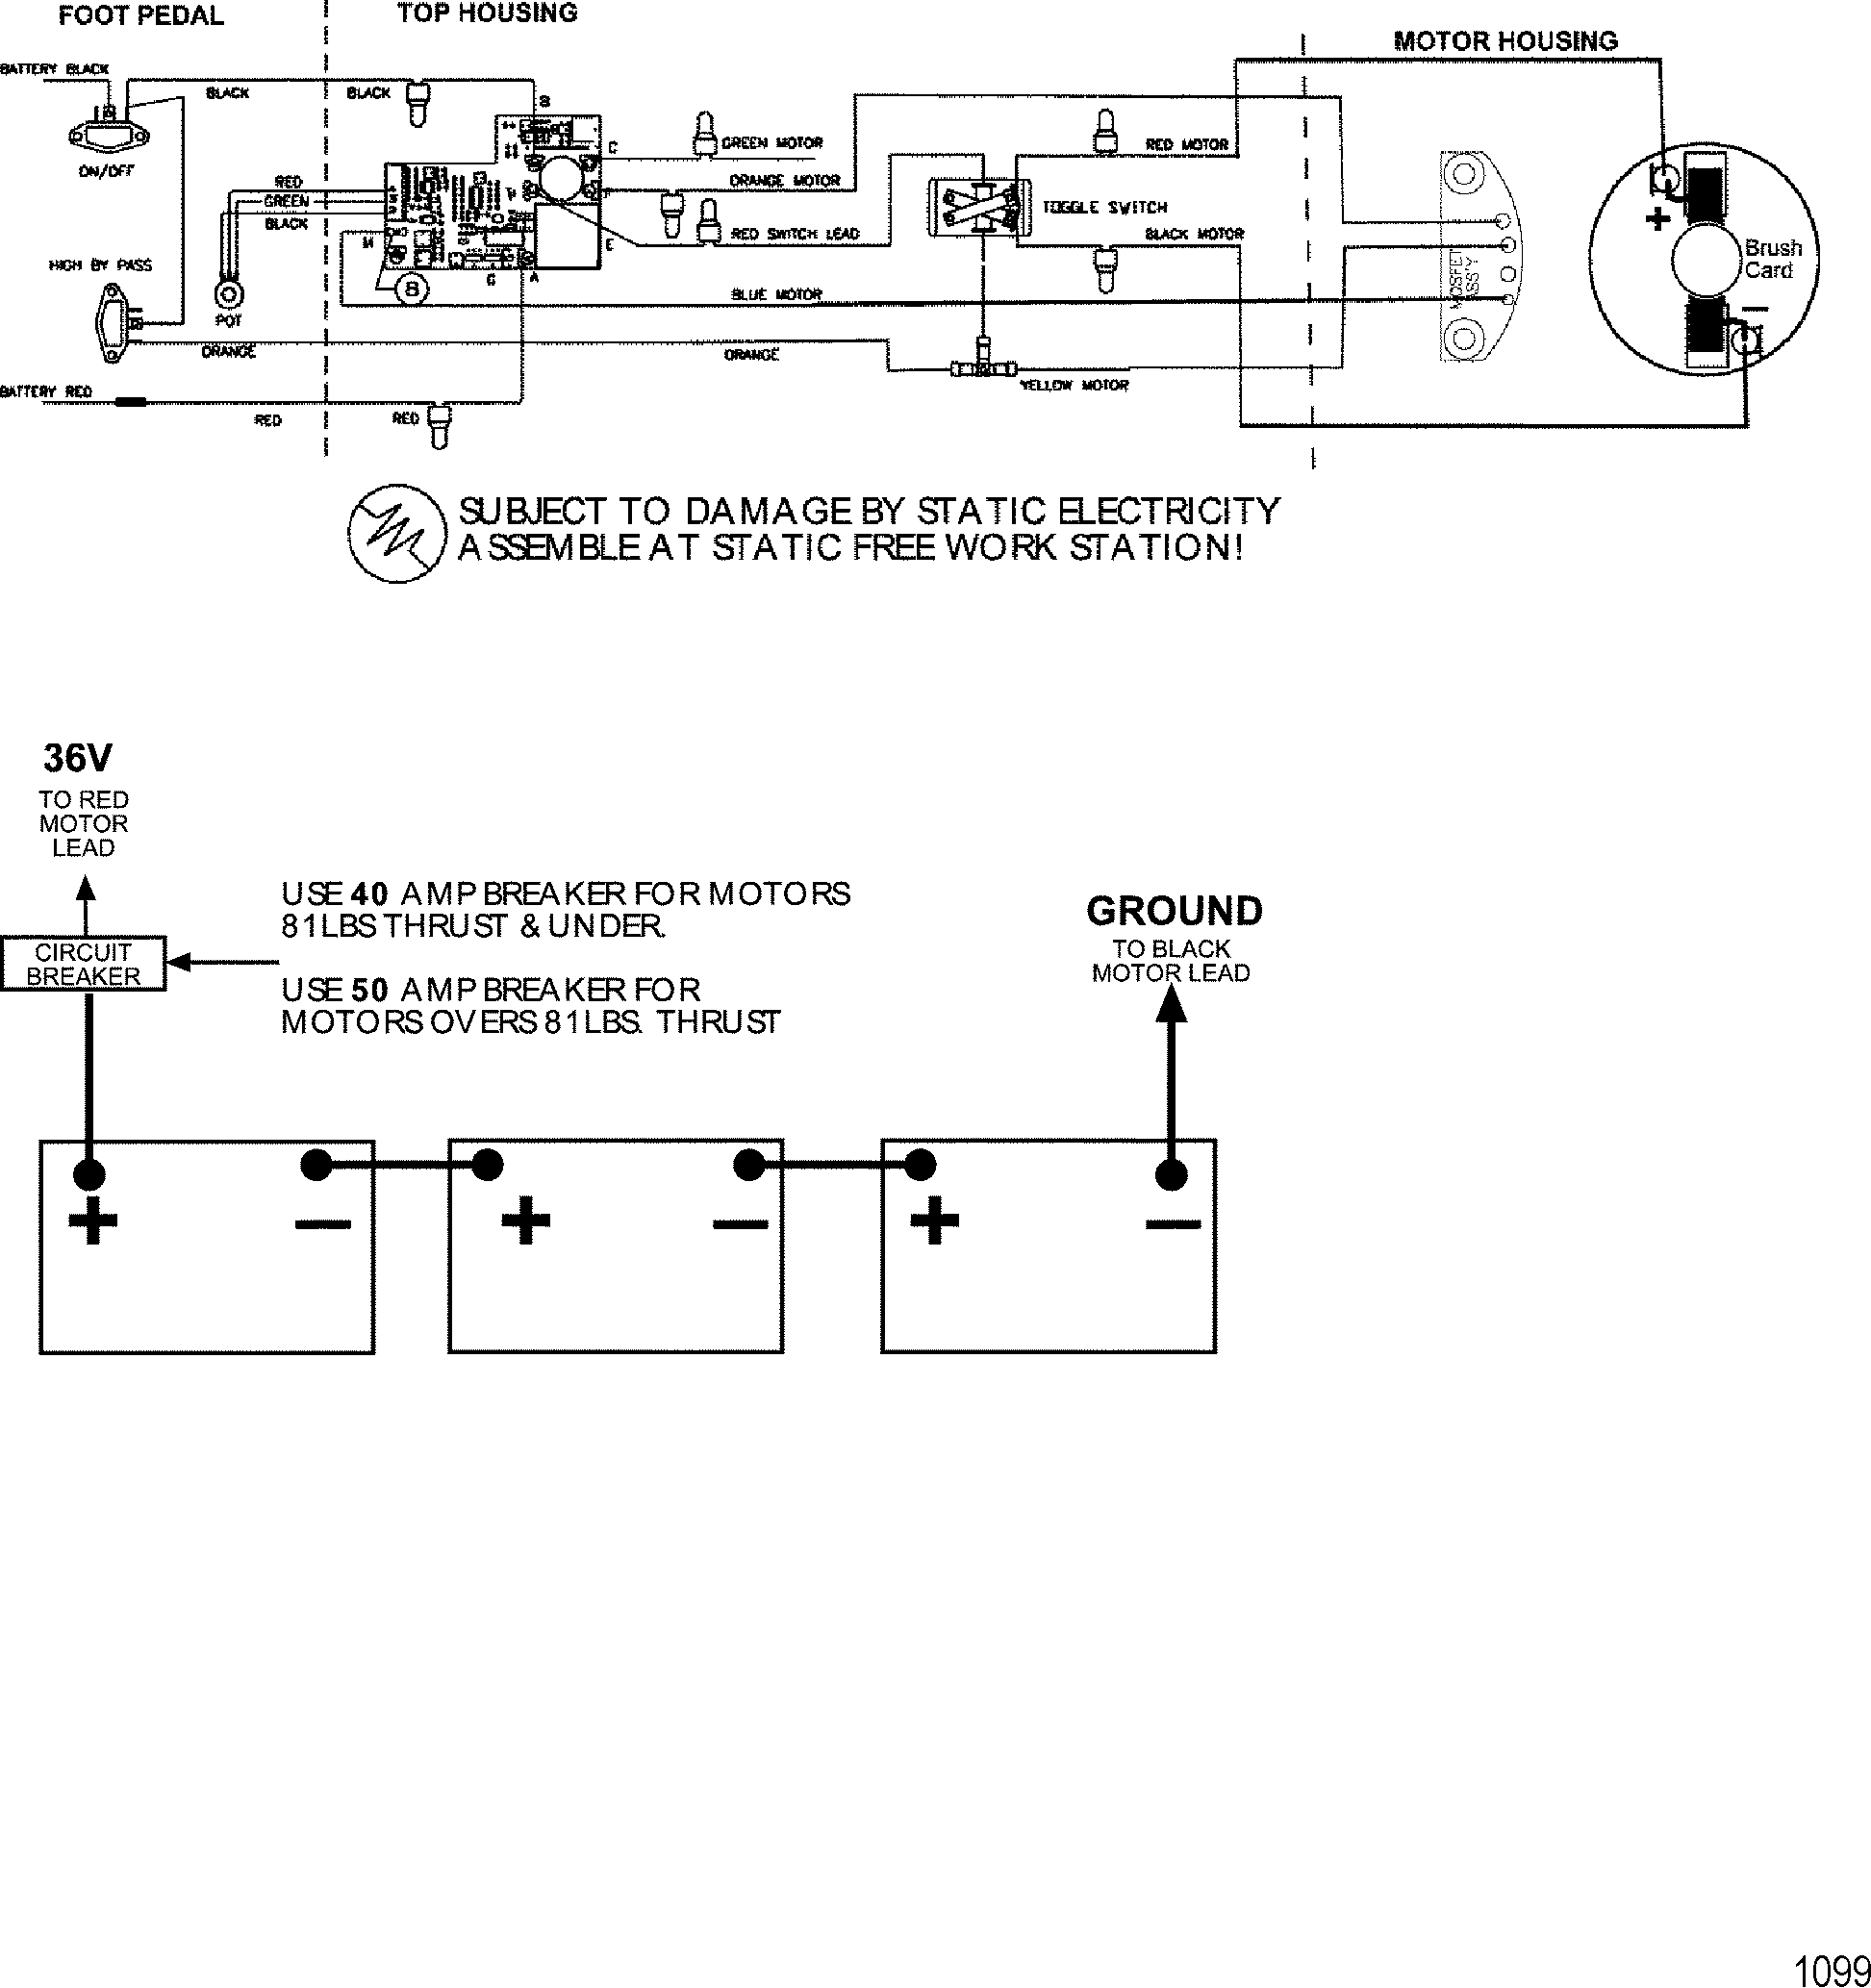 36v Wiring Diagram Trolling Motor : Wire diagram model v volt for motorguide